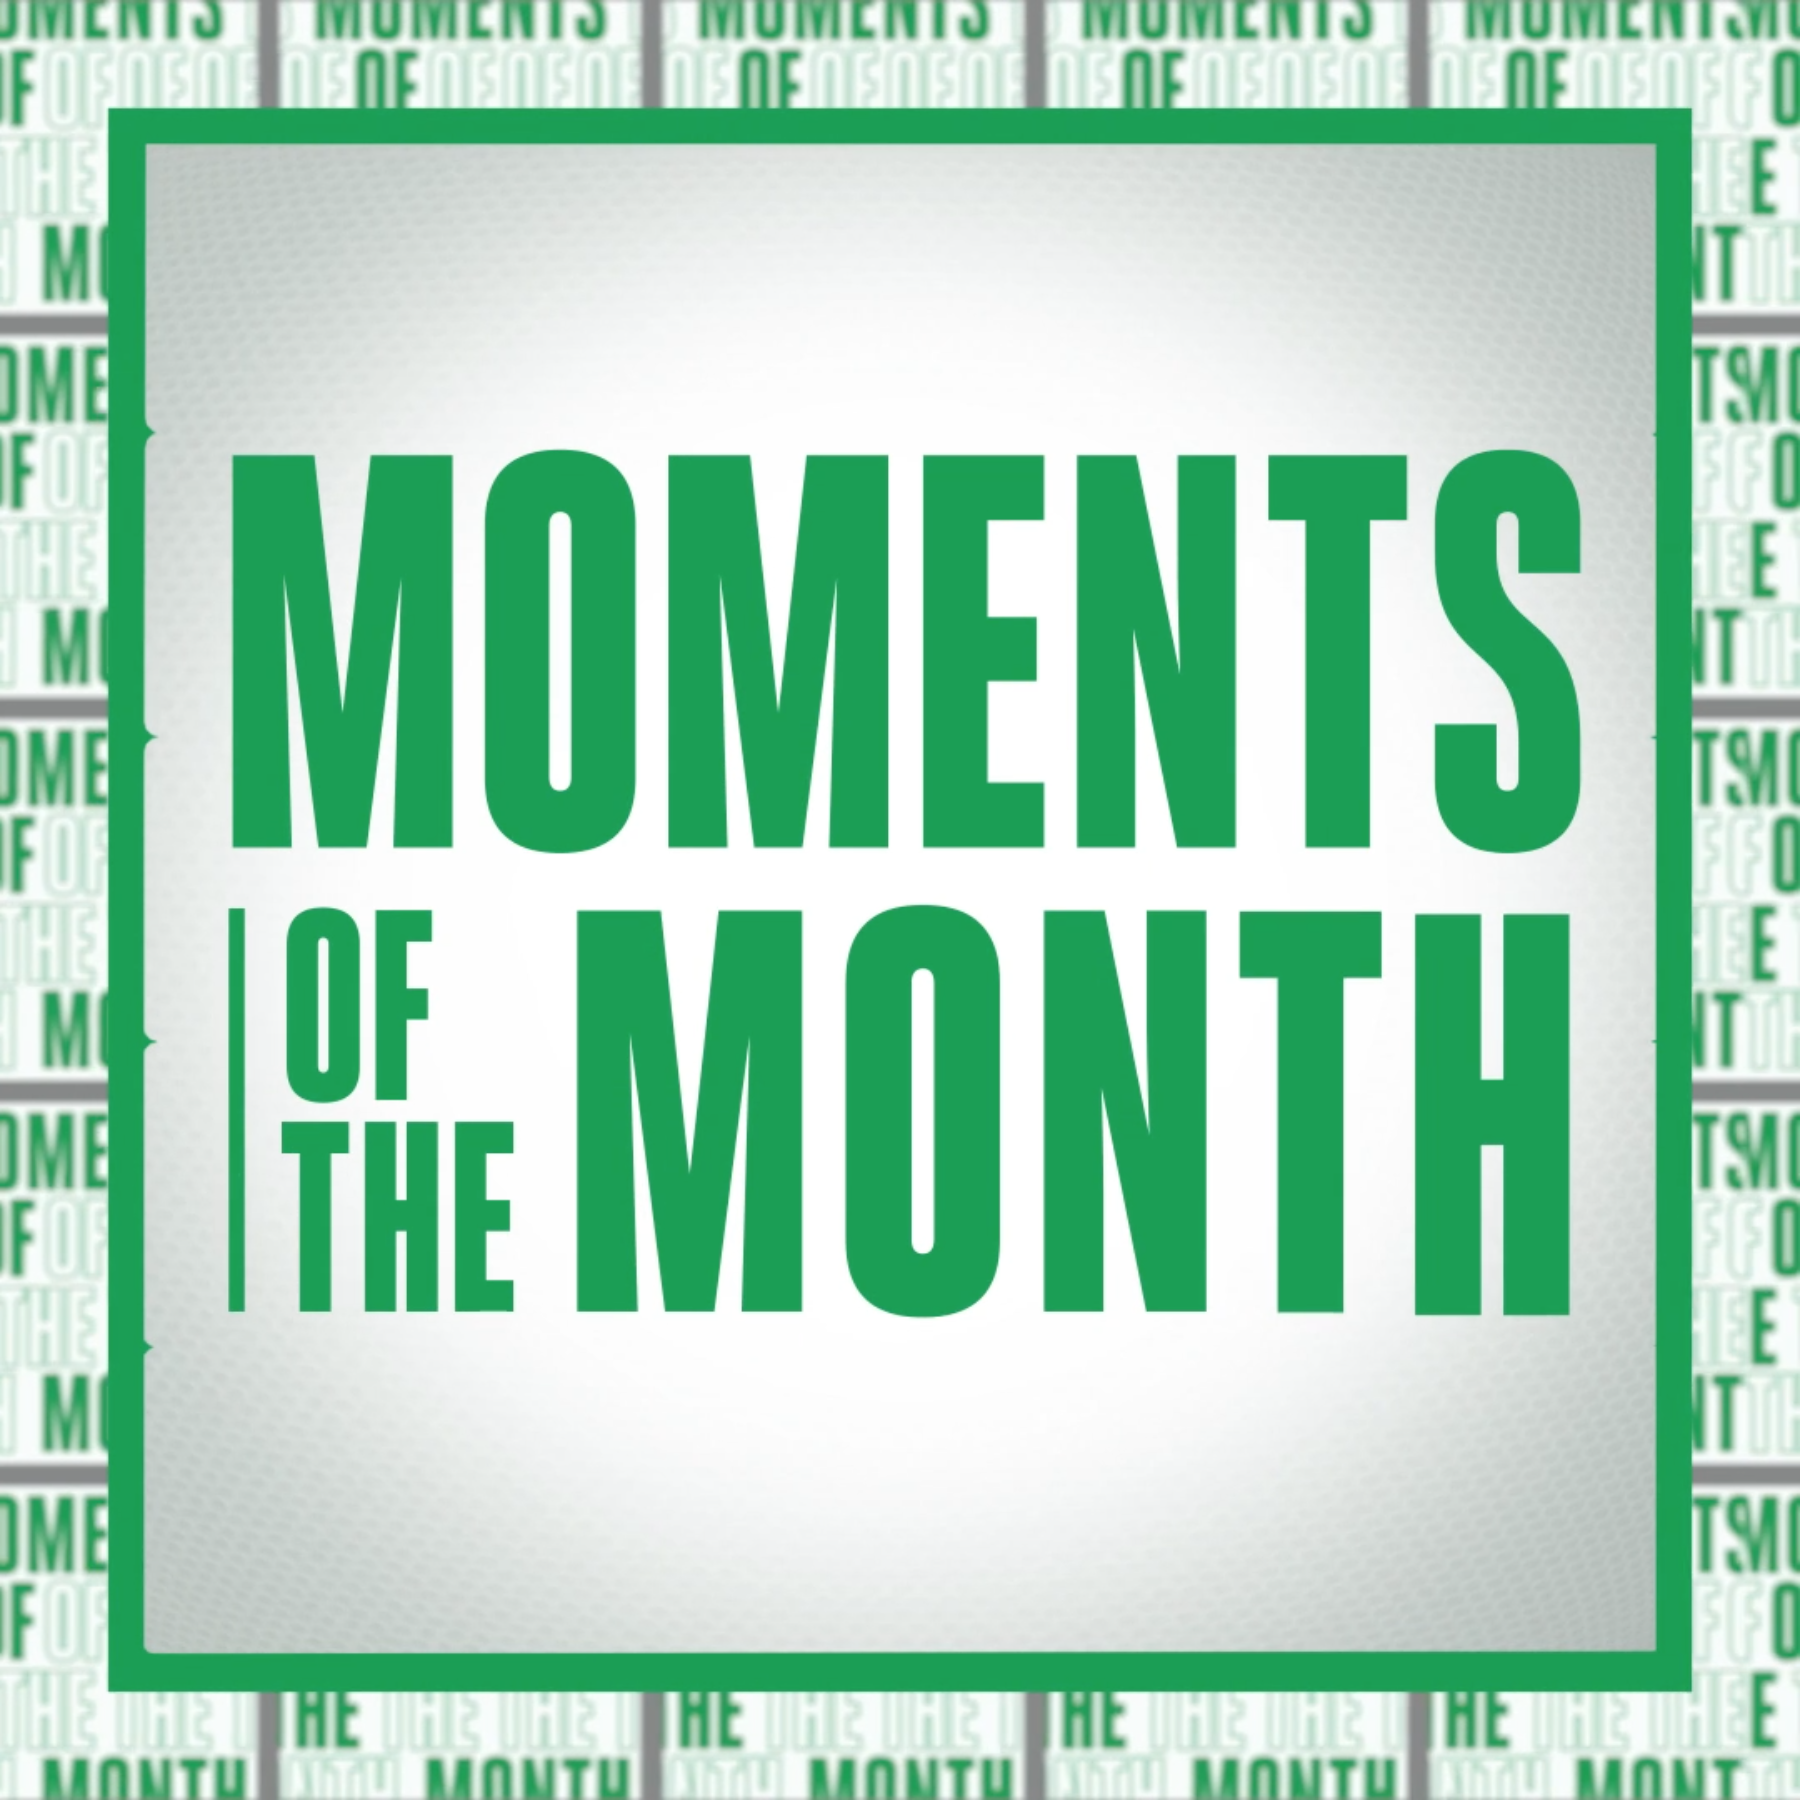 Moment of the Month